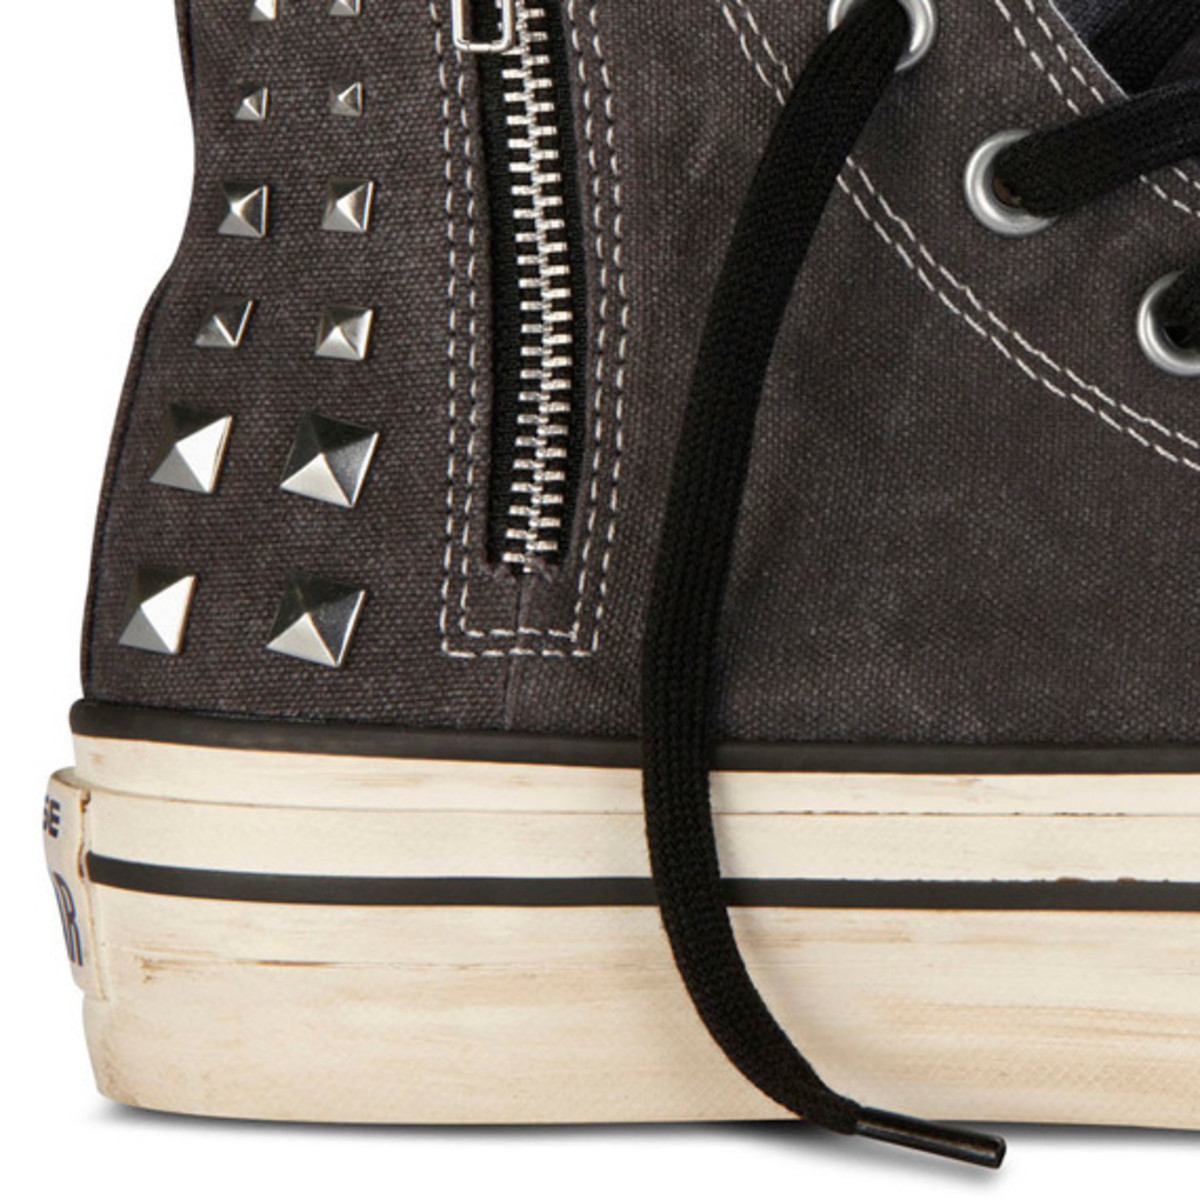 converse-chuck-taylor-all-star-collar-studs-fall-2013-collection-15